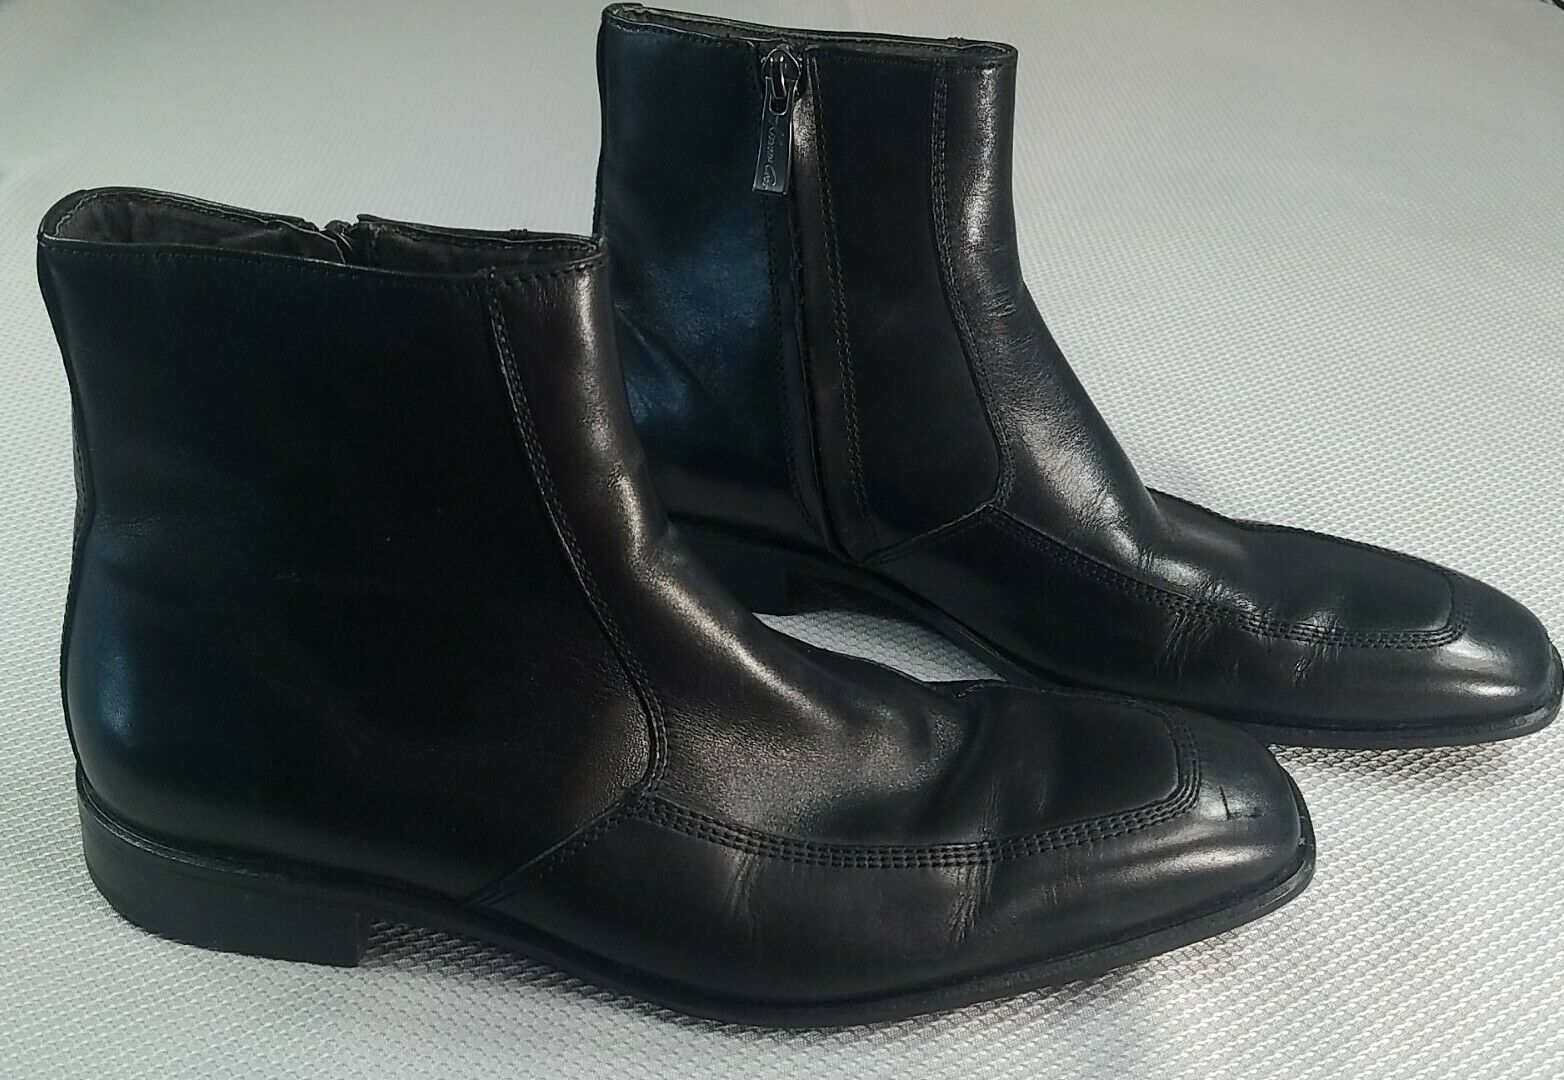 KENNETH COLE Mens Dress Shoes Black Leather High Top Side Zip Boots Size 8M